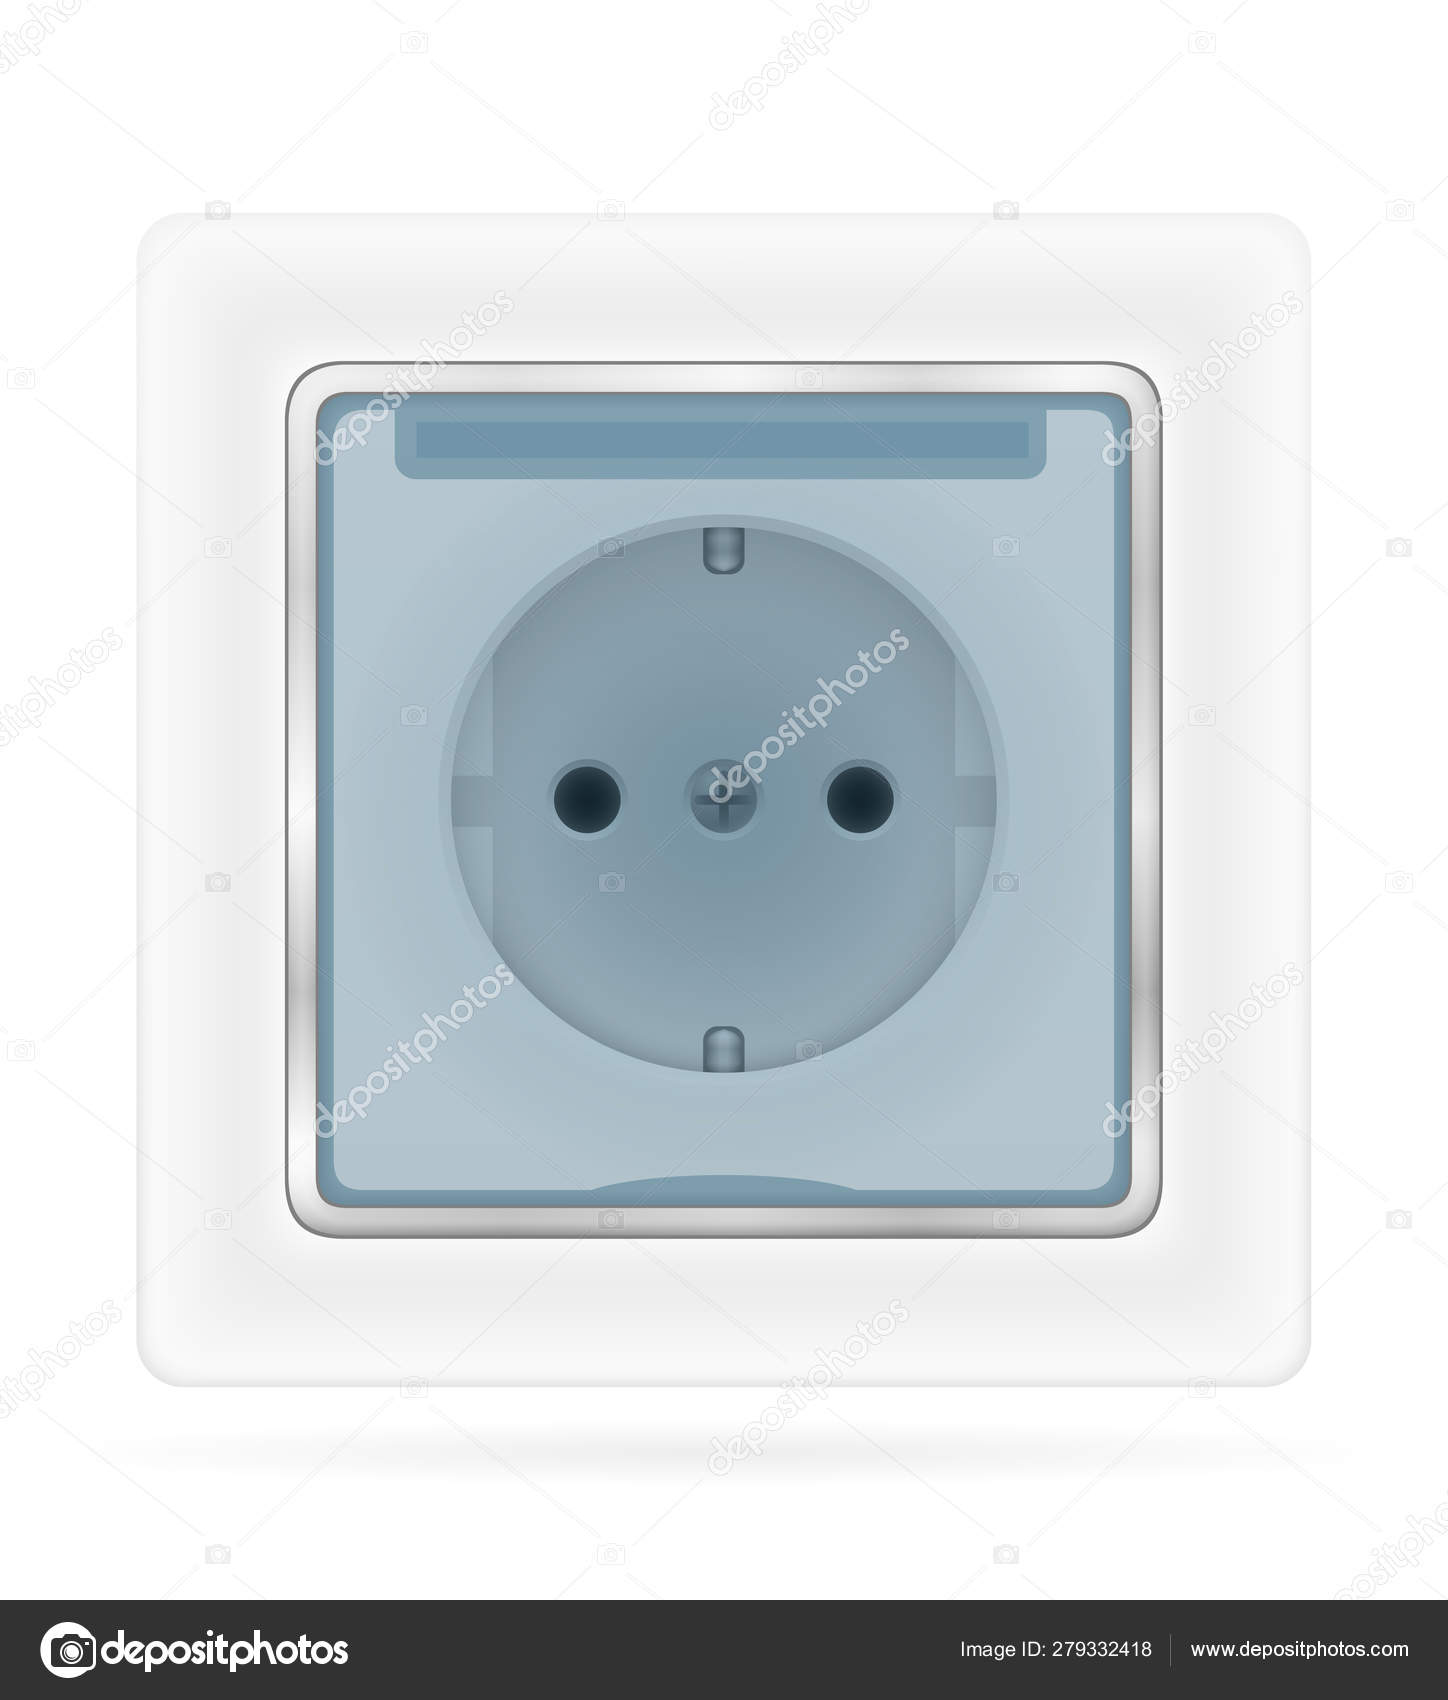 Electrical socket outlet for indoor electricity wiring stock ... on indoor siding, indoor antenna, indoor generator, indoor air conditioning, indoor coil, indoor kitchen, indoor electrical wire house, indoor trim, indoor fountains, indoor fans, indoor carpet,